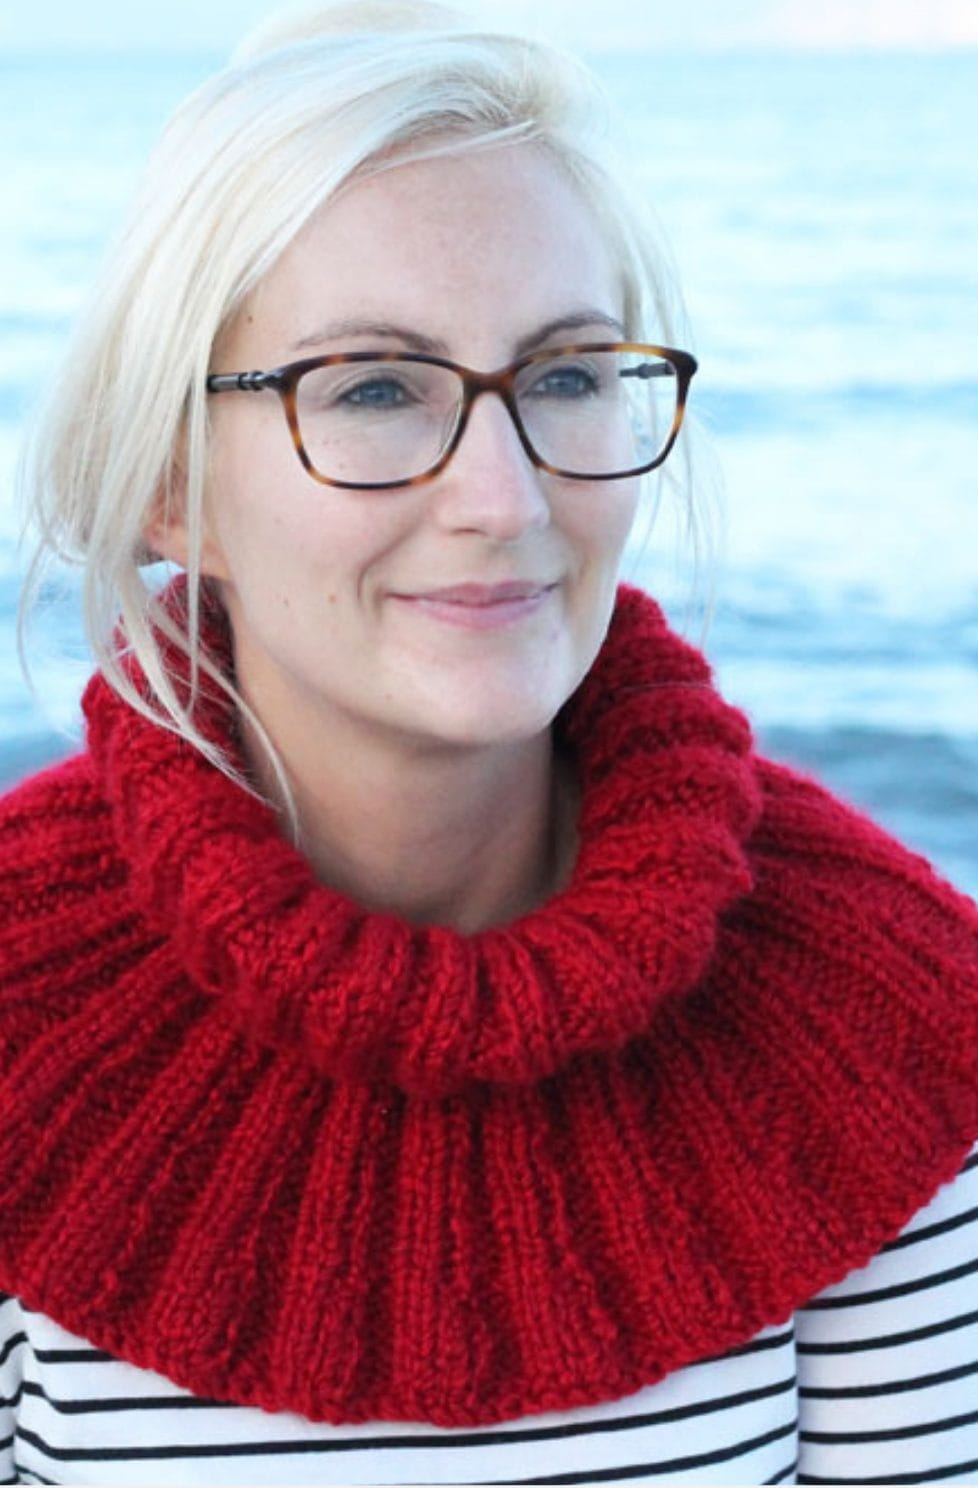 Ribbed cowl pattern